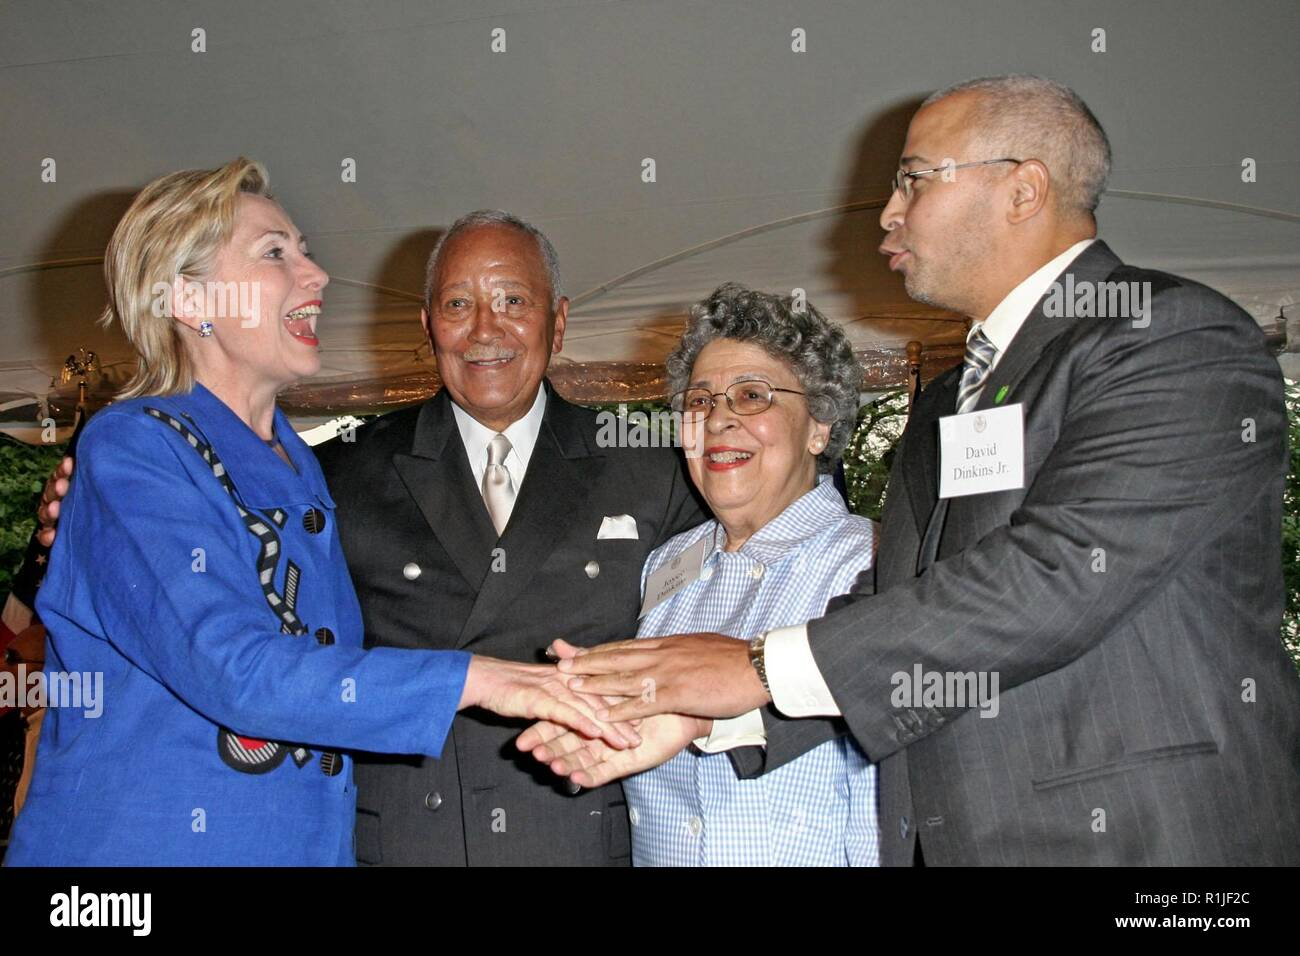 david dinkins jr high resolution stock photography and images alamy https www alamy com new york ny july 16 sen hillary rodham clinton mayor david dinkins joyce dinkins david dinkins jr at david dinkins 80th birthday party at gracie mansion on monday july 16 2007 in new york ny photo by steve macksd mack pictures image224756404 html